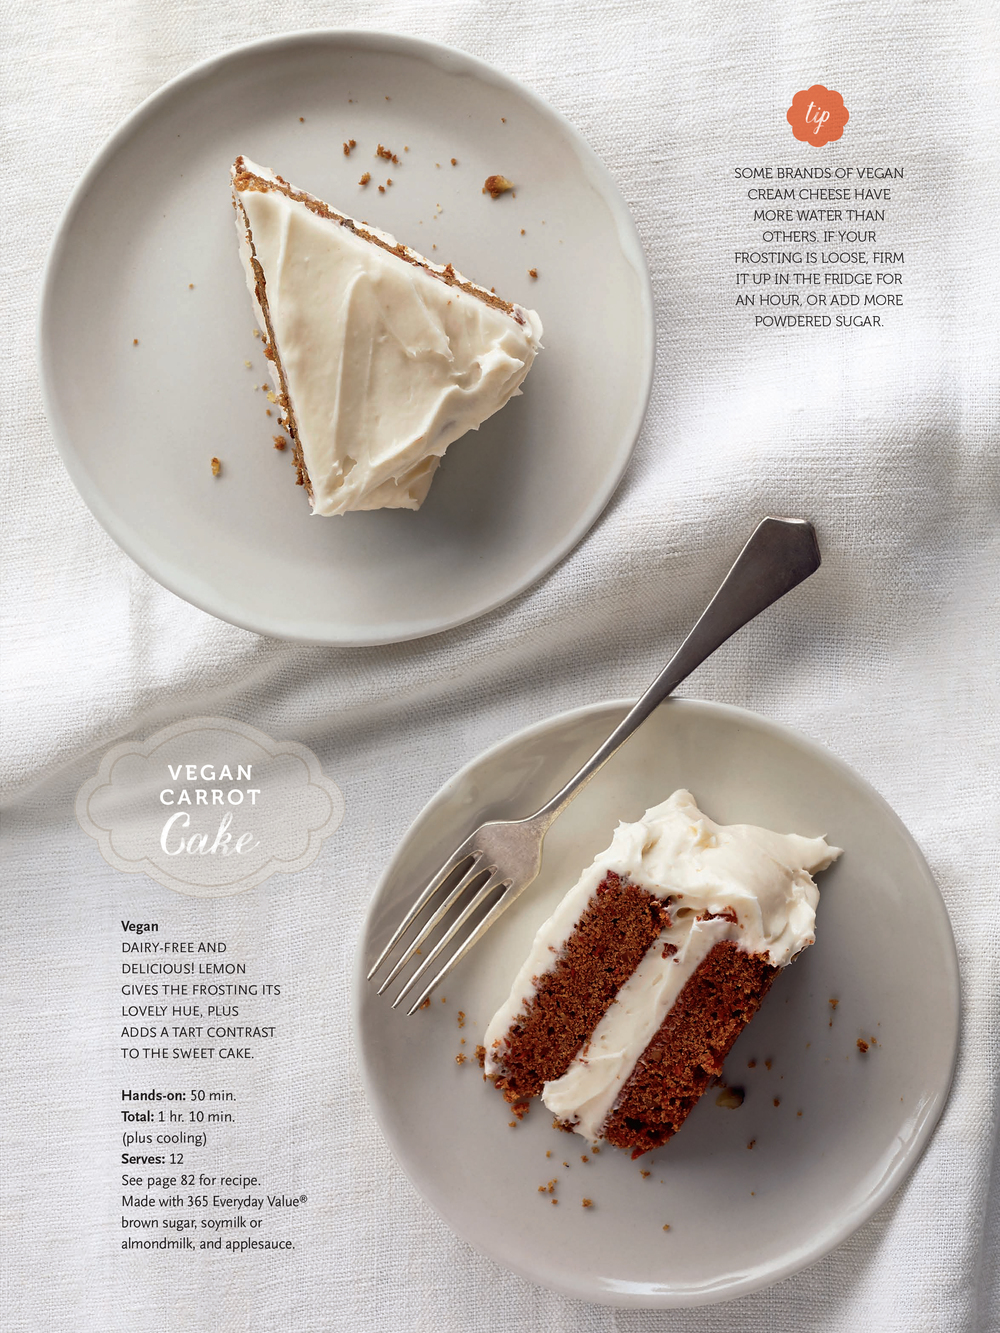 Jim Franco, 2014  Food Styling: Jamie Kimm, Prop Styling: Kaitlyn Du Ross